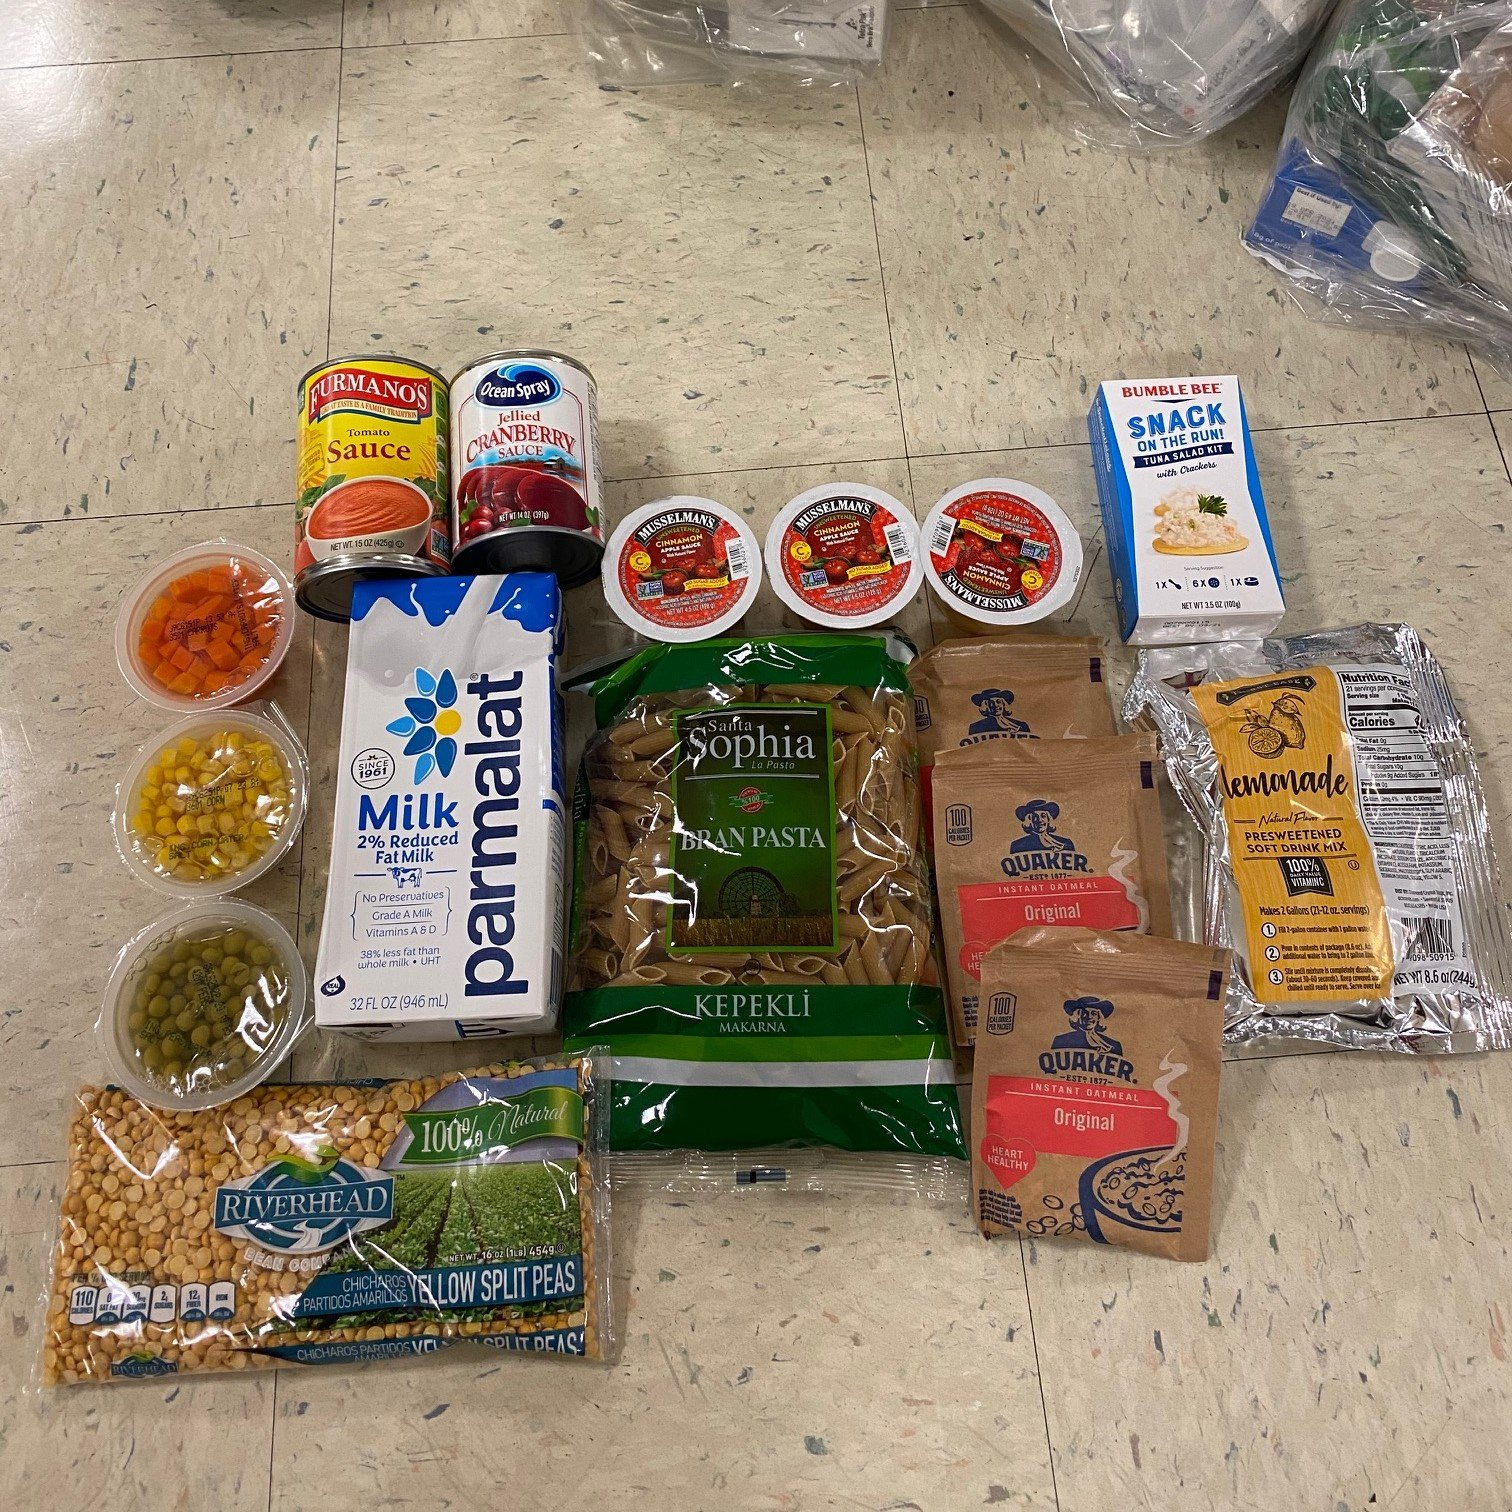 Donated by Andromeda Advantage, these generous food supplies will be distributed to SACHR participants facing food insecurity.